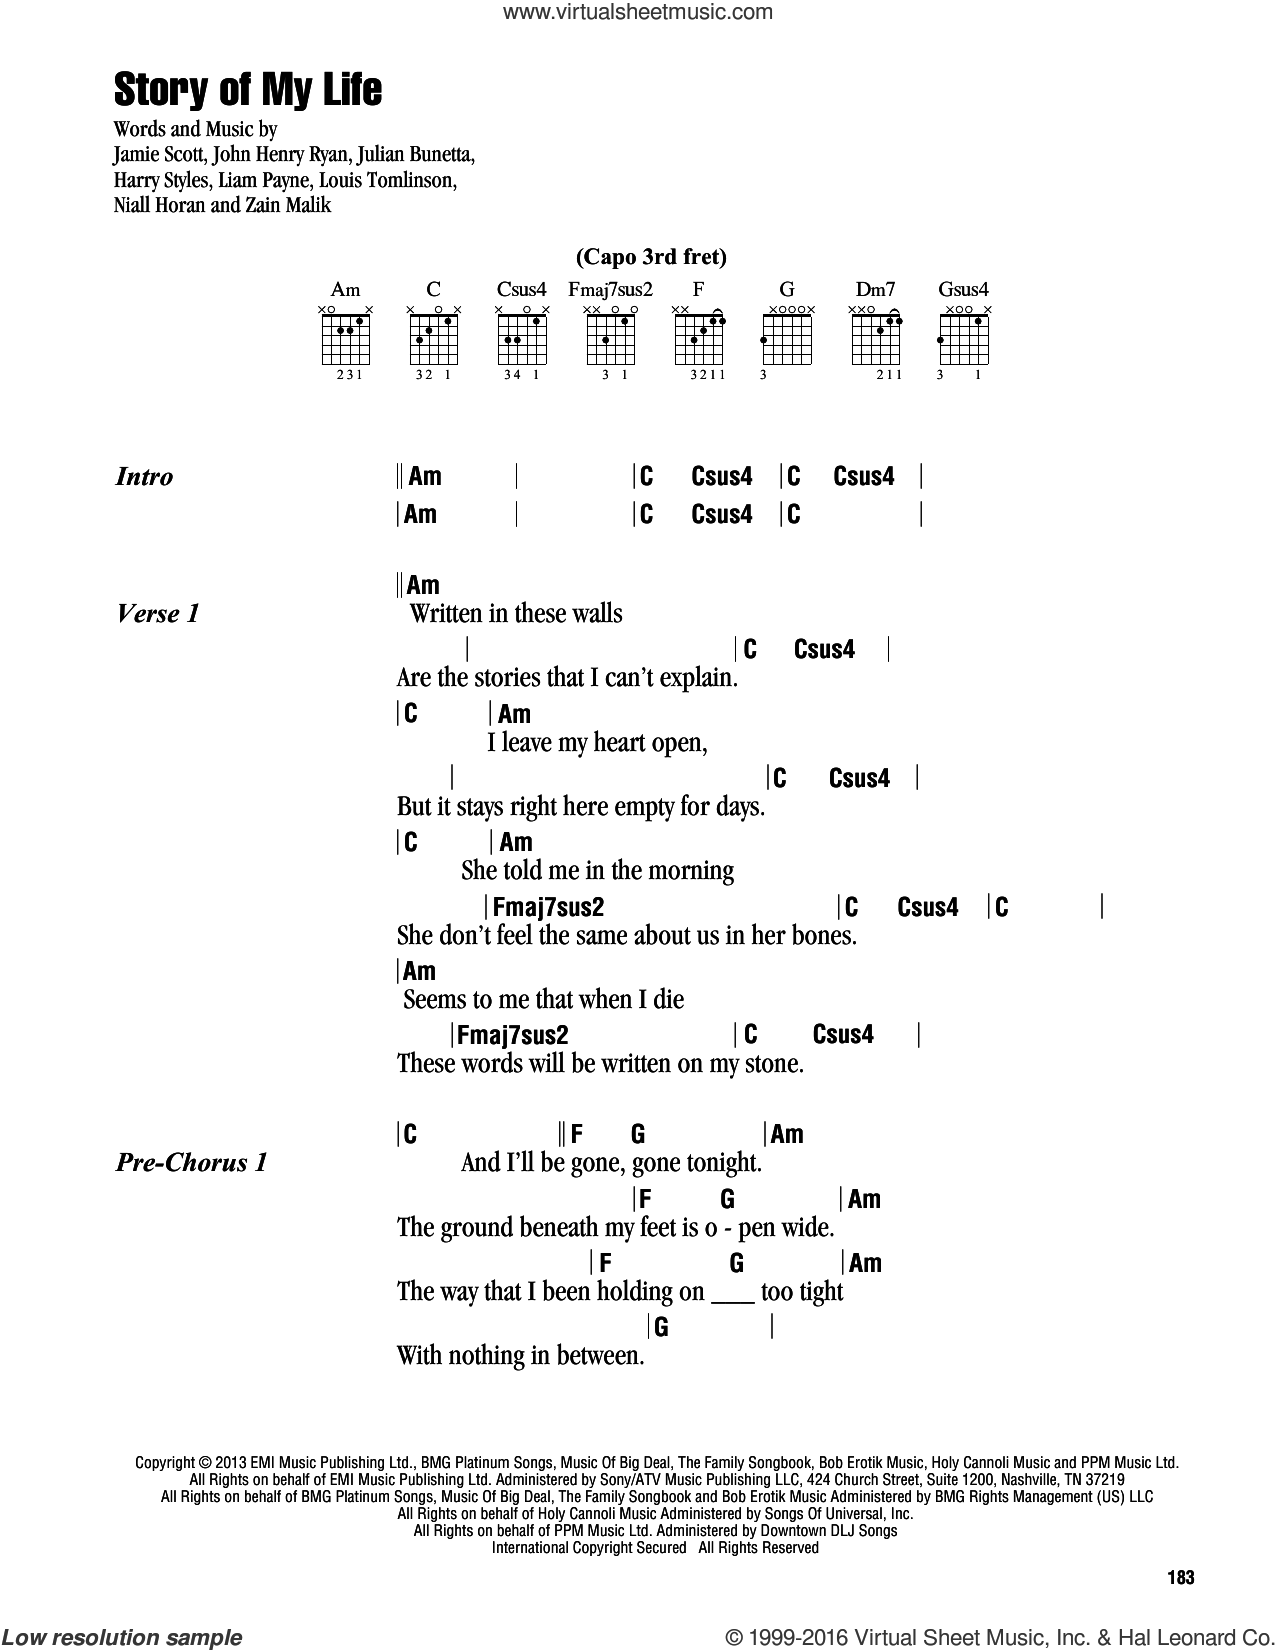 Story Of My Life sheet music for guitar (chords) by Zain Malik, One Direction, Harry Styles, Jamie Scott, Julian Bunetta, Louis Tomlinson and Niall Horan. Score Image Preview.